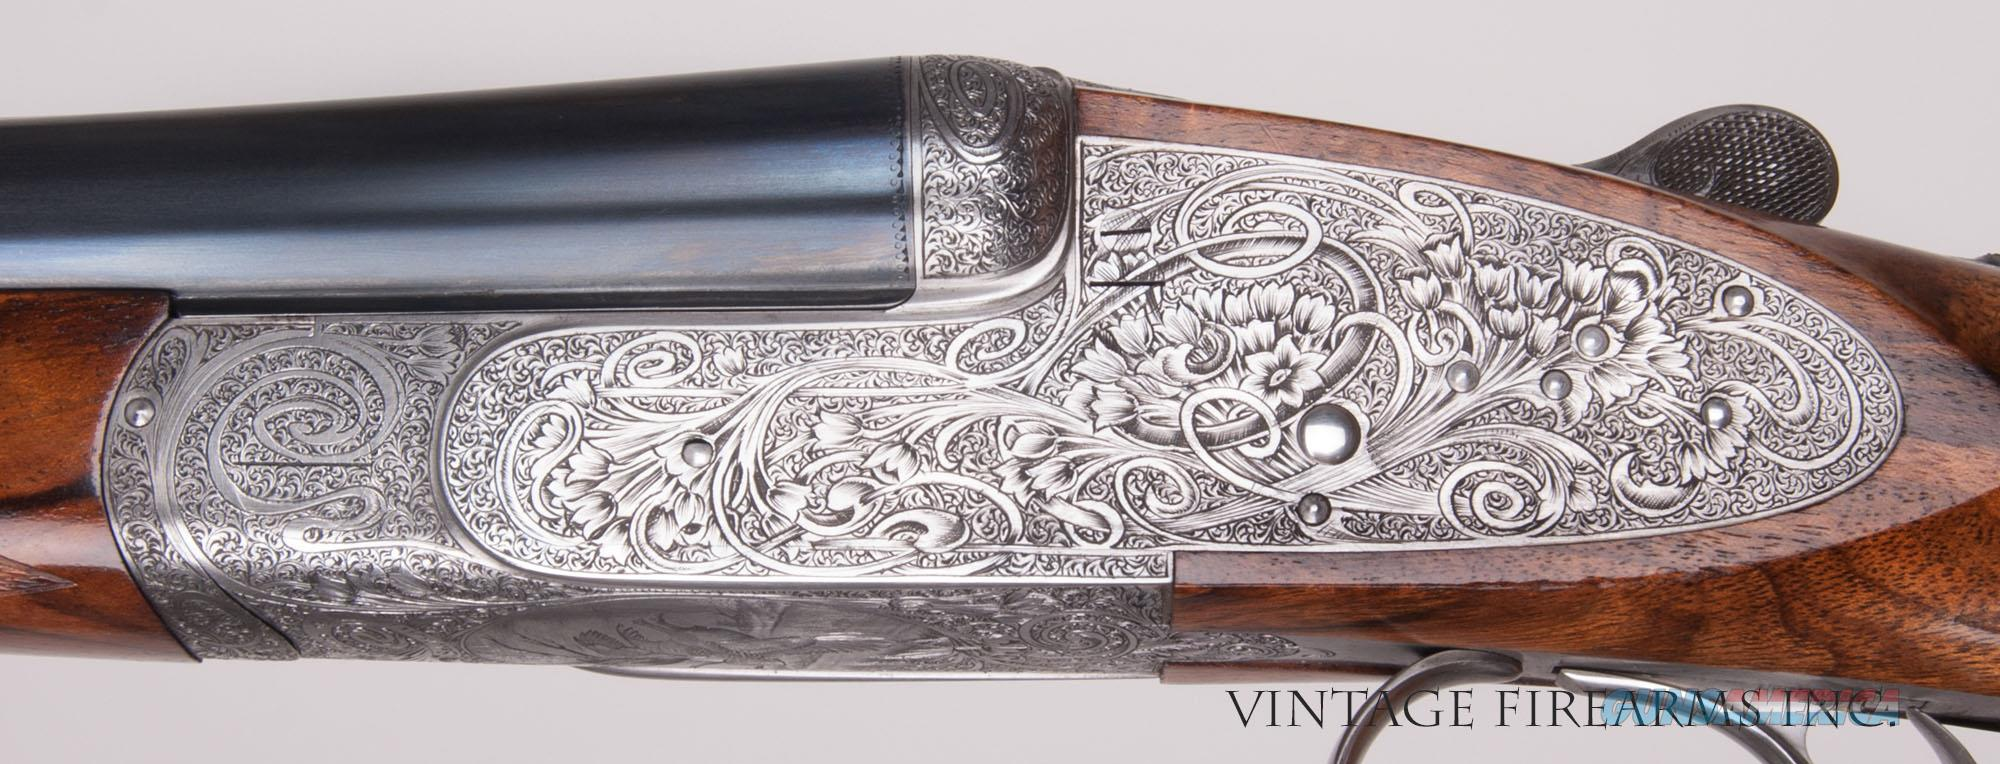 Abbiatico & Salvinelli BEST SIDELOCK EJECTOR .410 GAME GUN BONSI ENGRAVED   Guns > Shotguns > Double Shotguns (Misc.)  > Italian